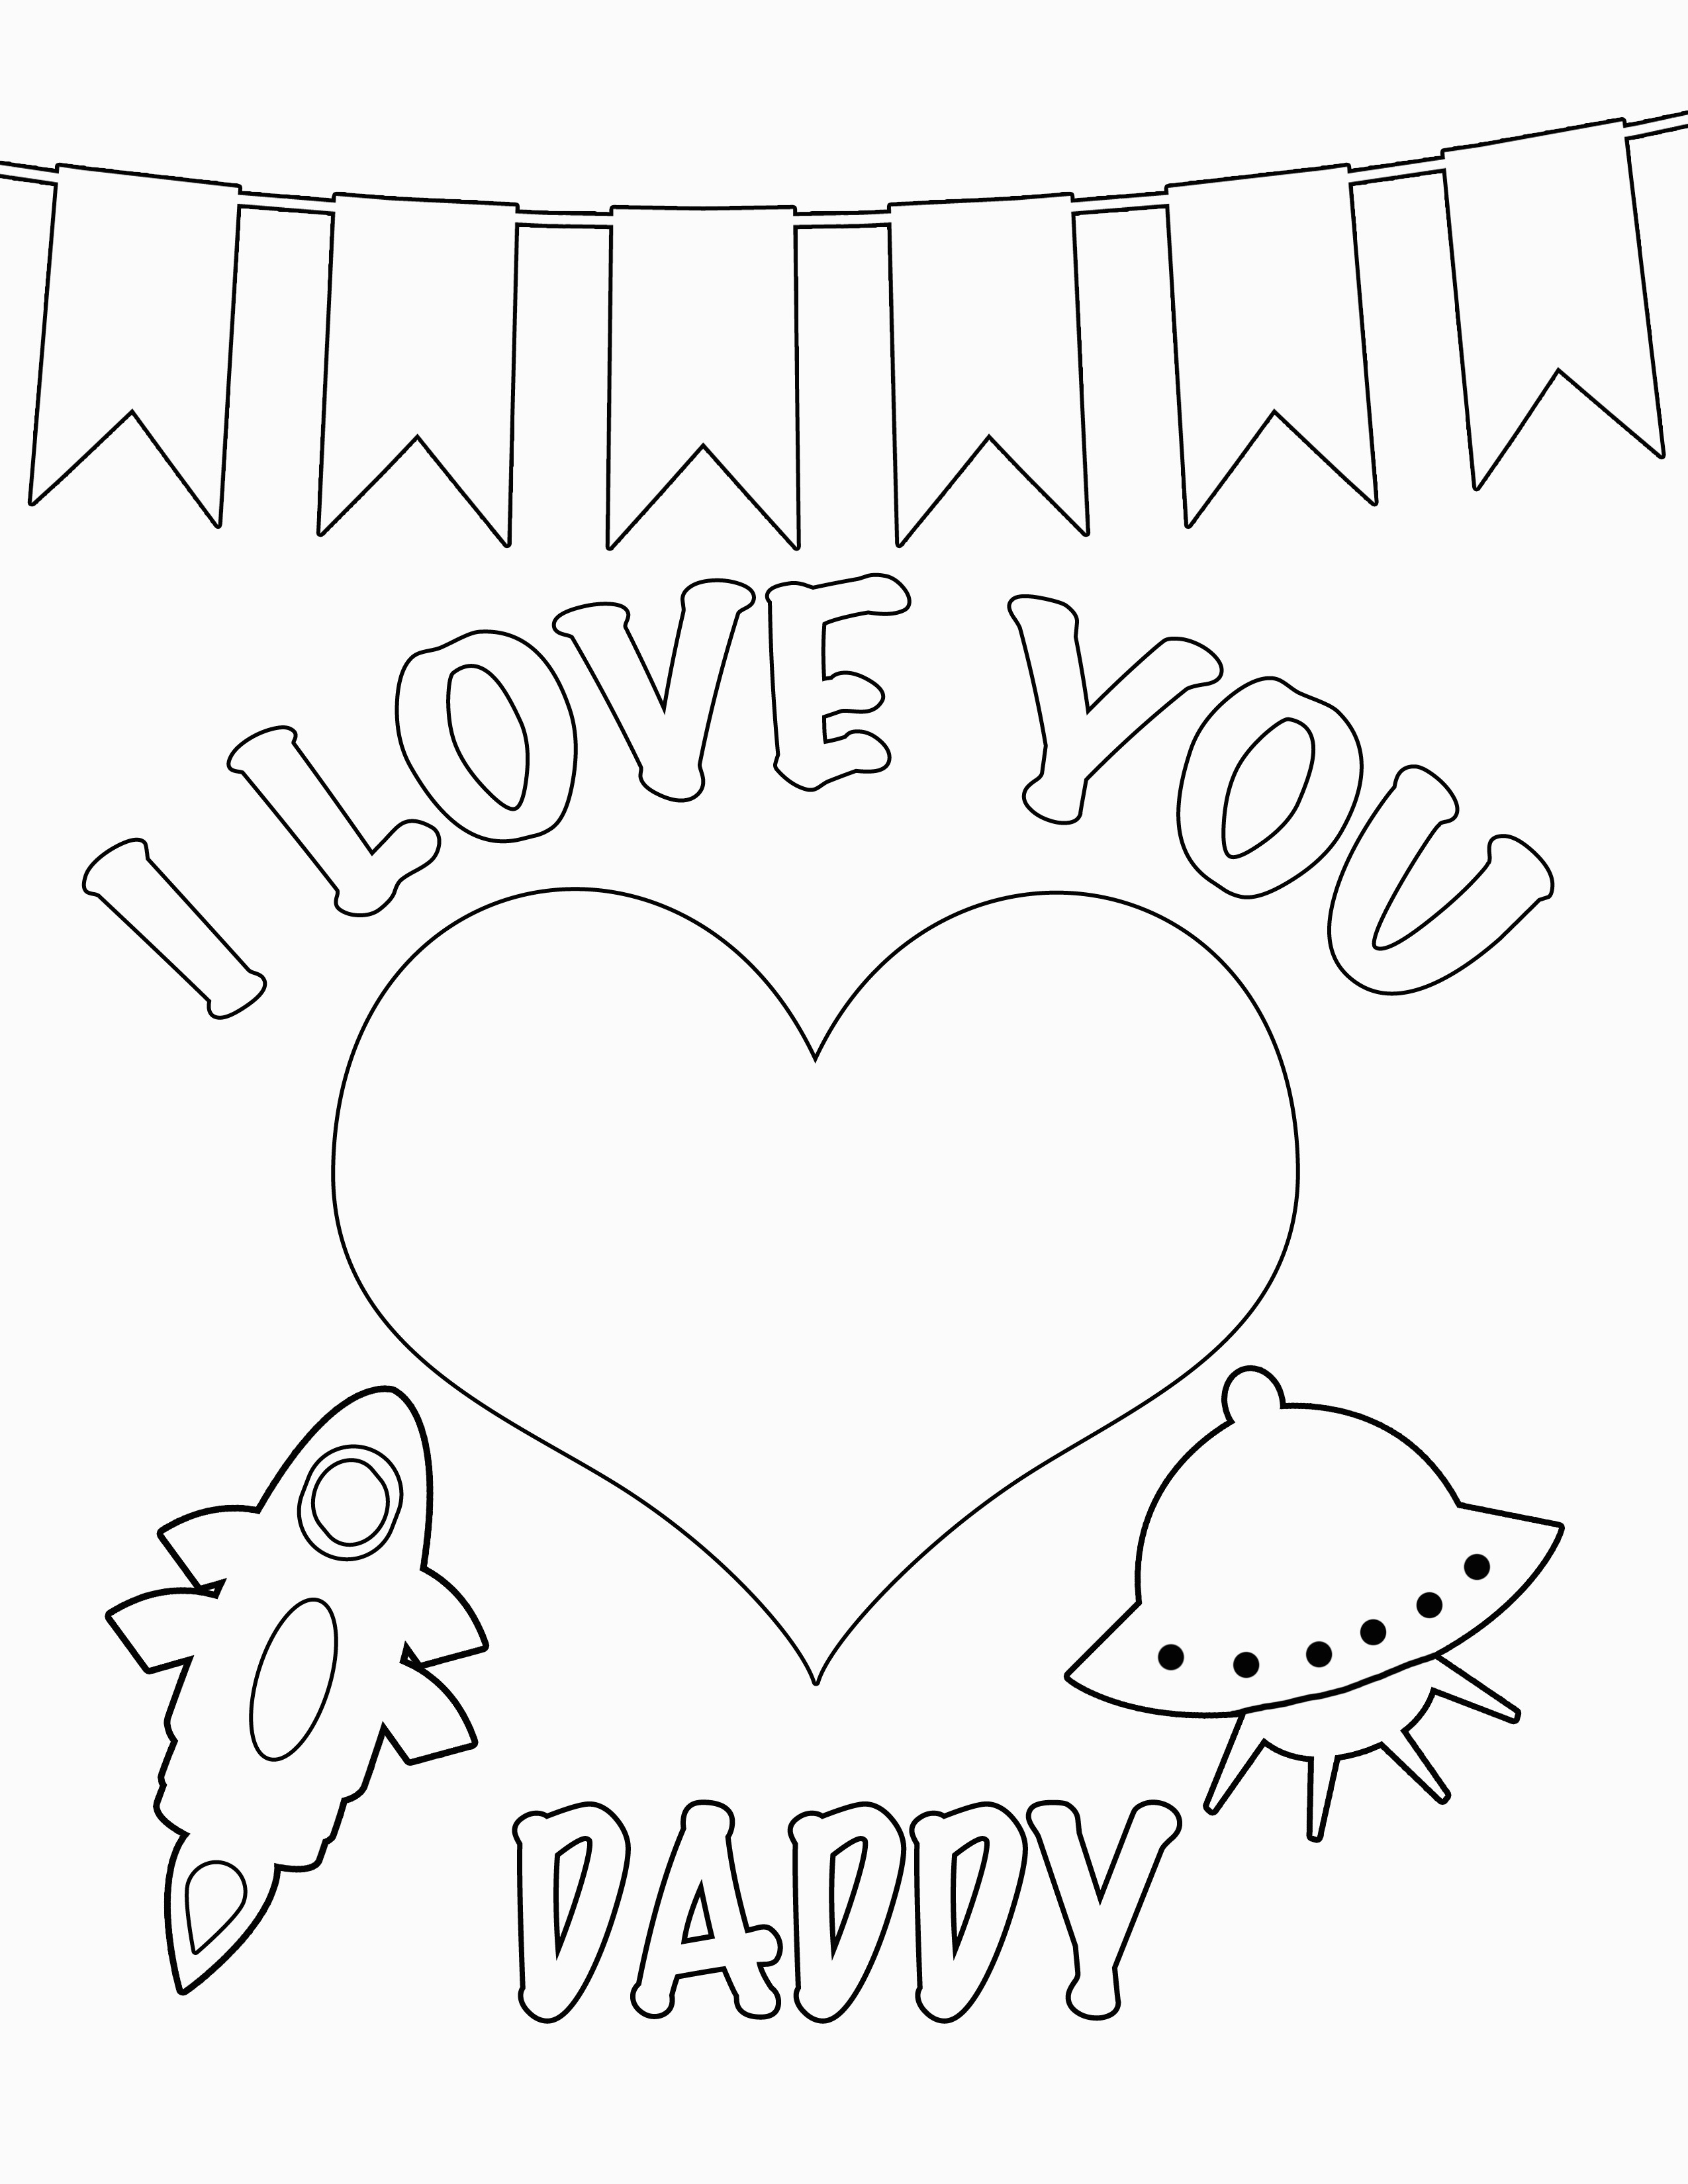 Valentines Day Hearts Coloring Pages Coloring Pages 54 Valentines Day Coloring Pages Printable Picture